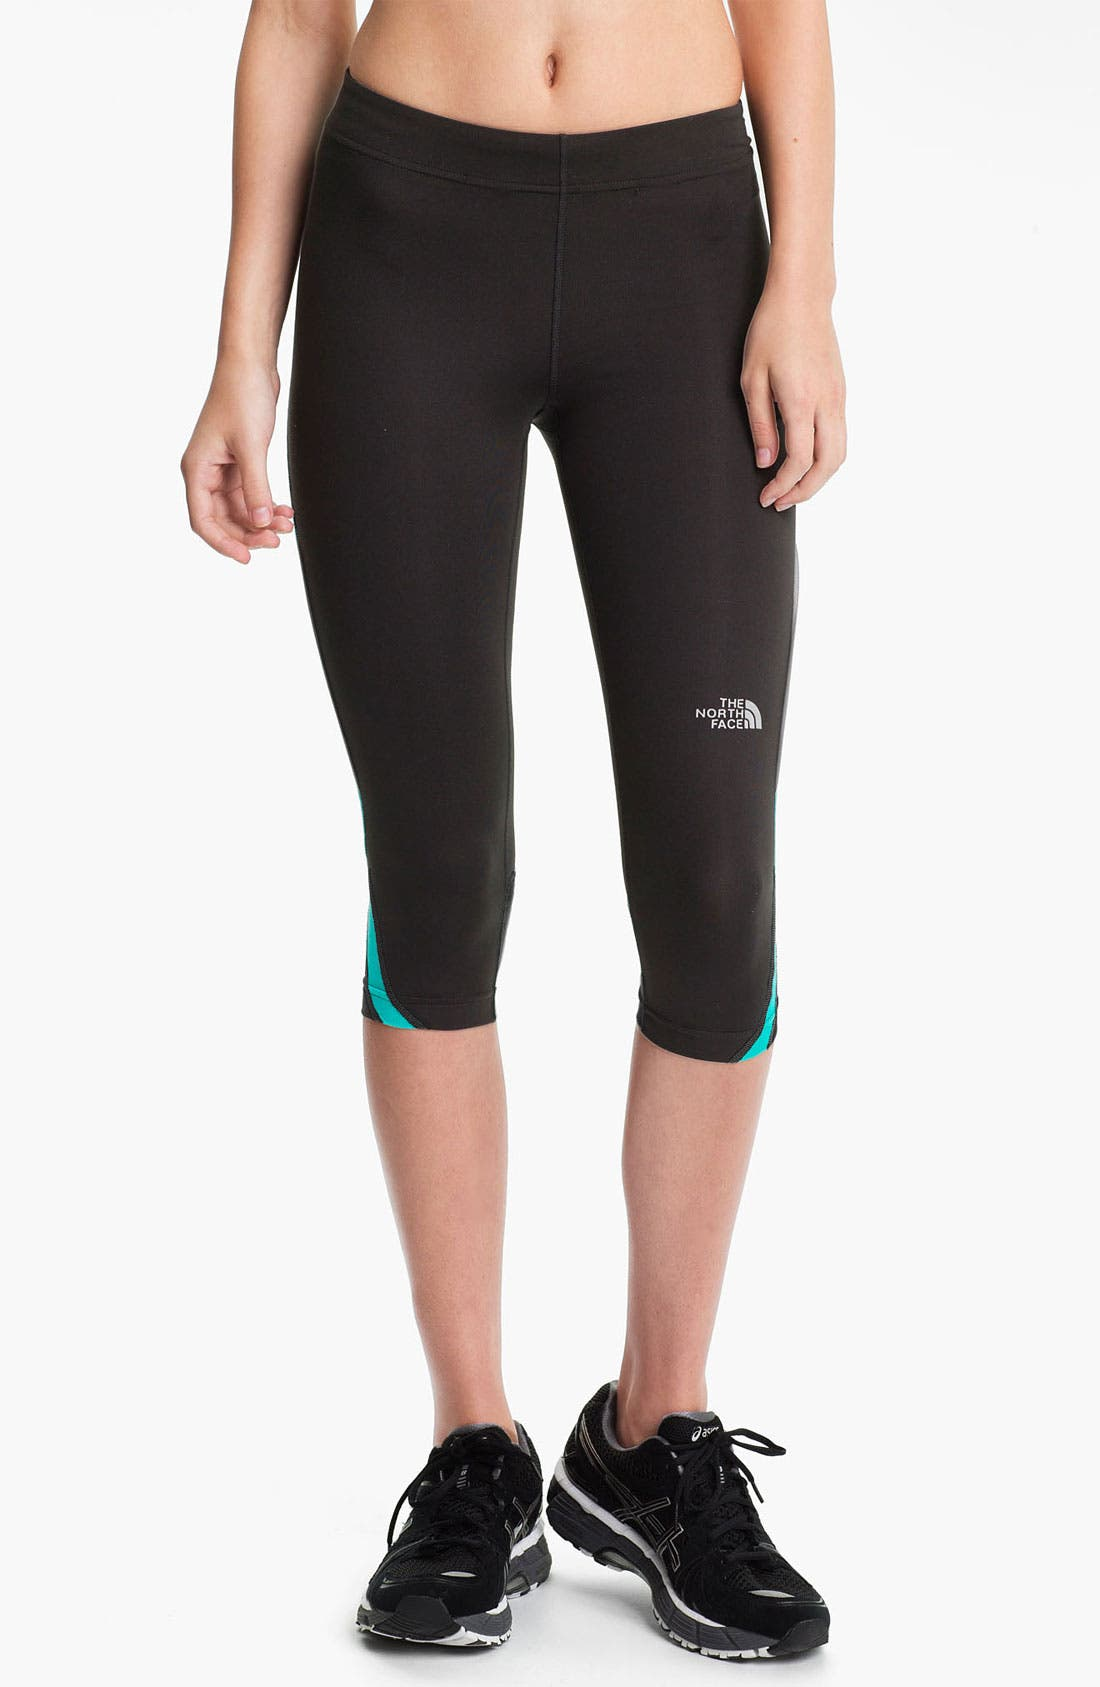 Alternate Image 1 Selected - The North Face 'GTD' Capri Pants